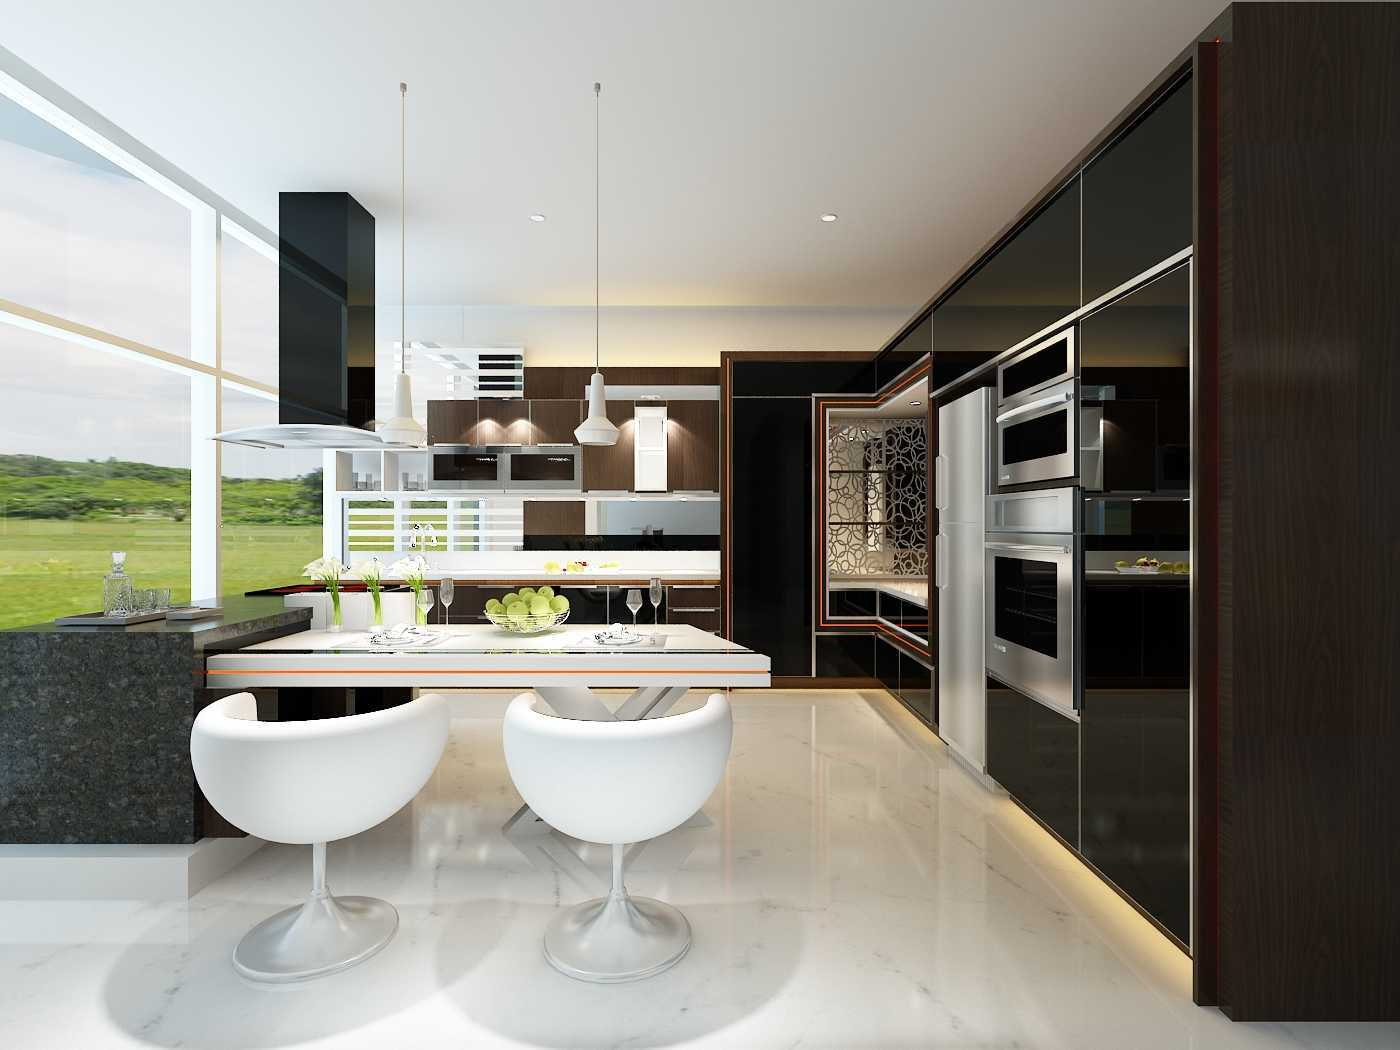 image modern kitchen. Grande Furniture Interior Architecture Modern Kitchen Alam Sutera Kitchen-Set-1 30002 Image